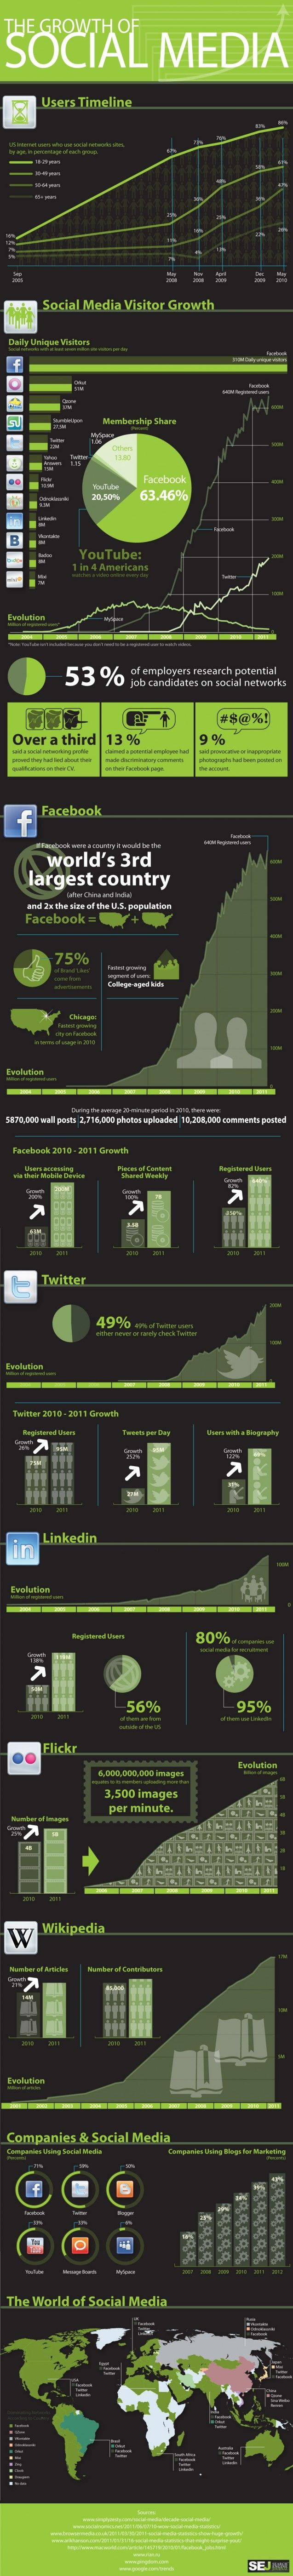 The Growth of Social Media at Search Engine Journal (Aug 2011) via @mark ivey